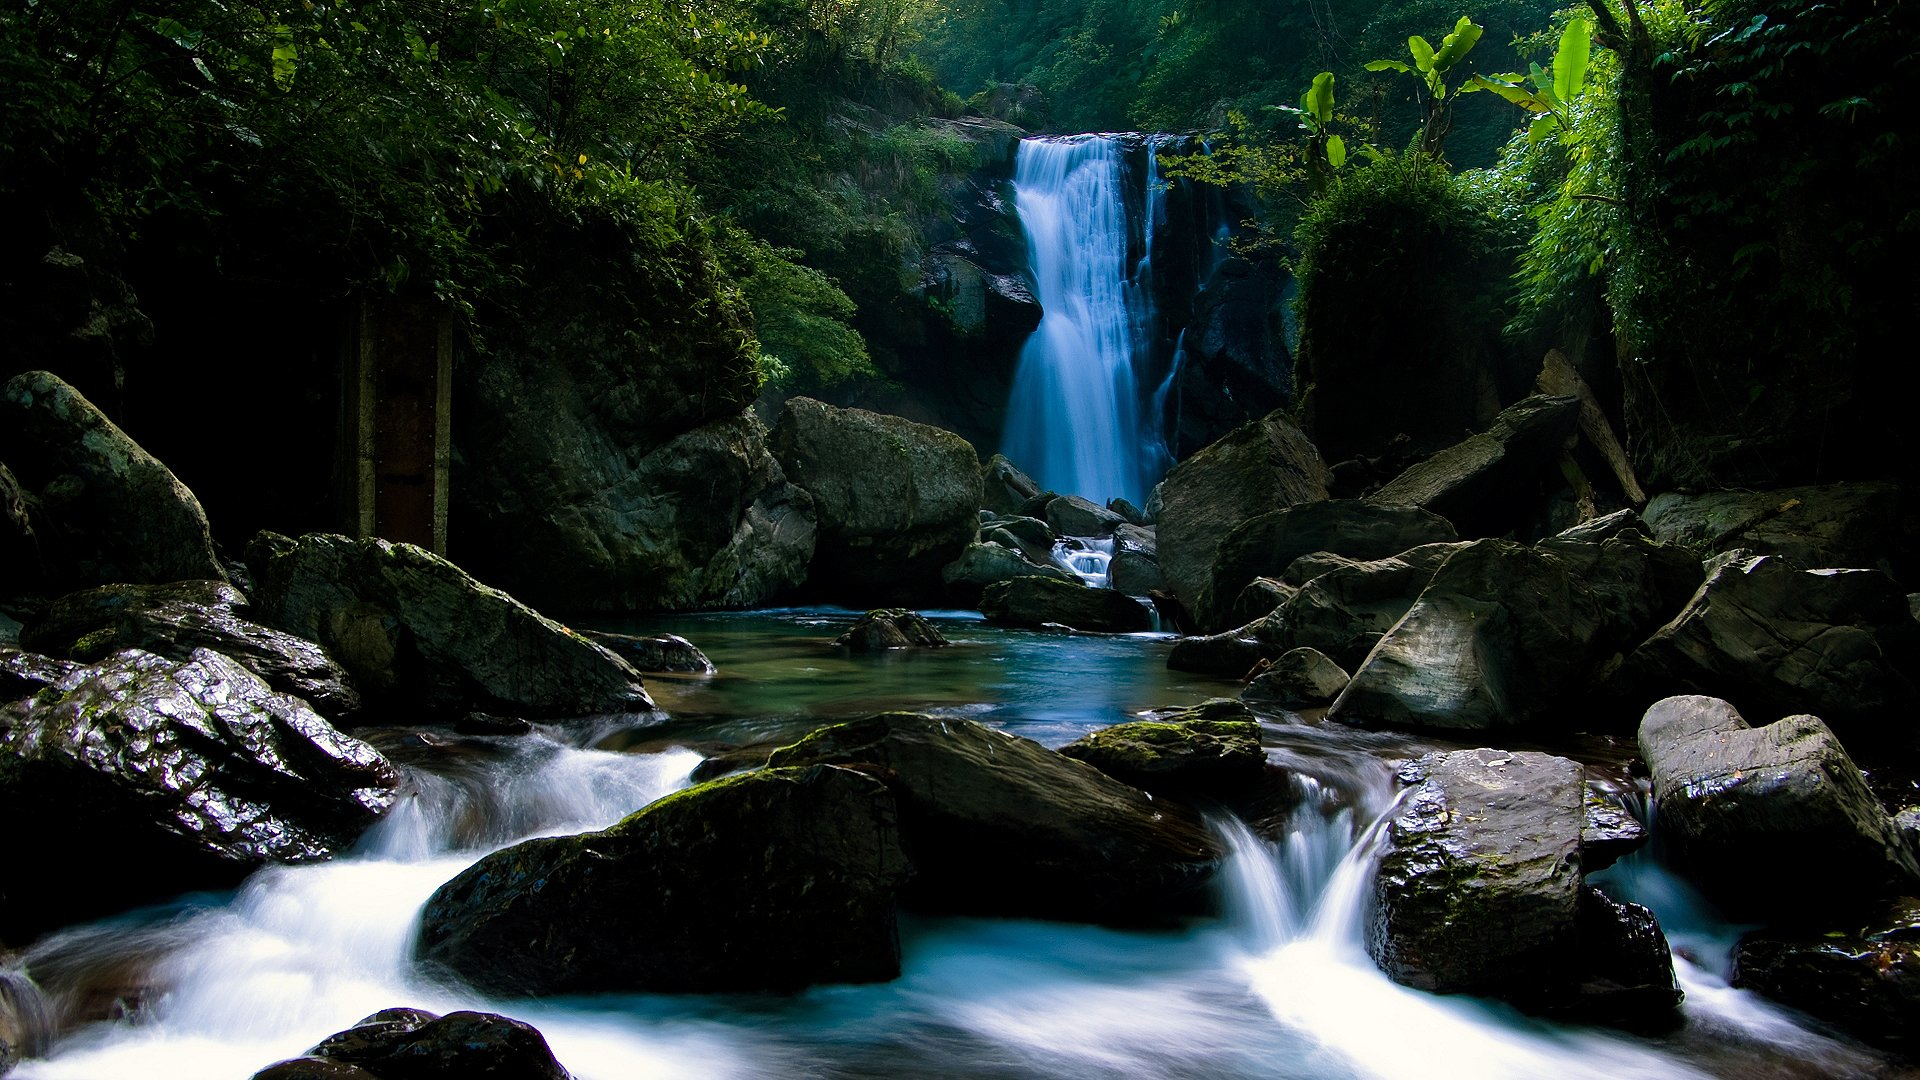 water falling nature fresh images cool nature hd wallpapers background 1920x1080